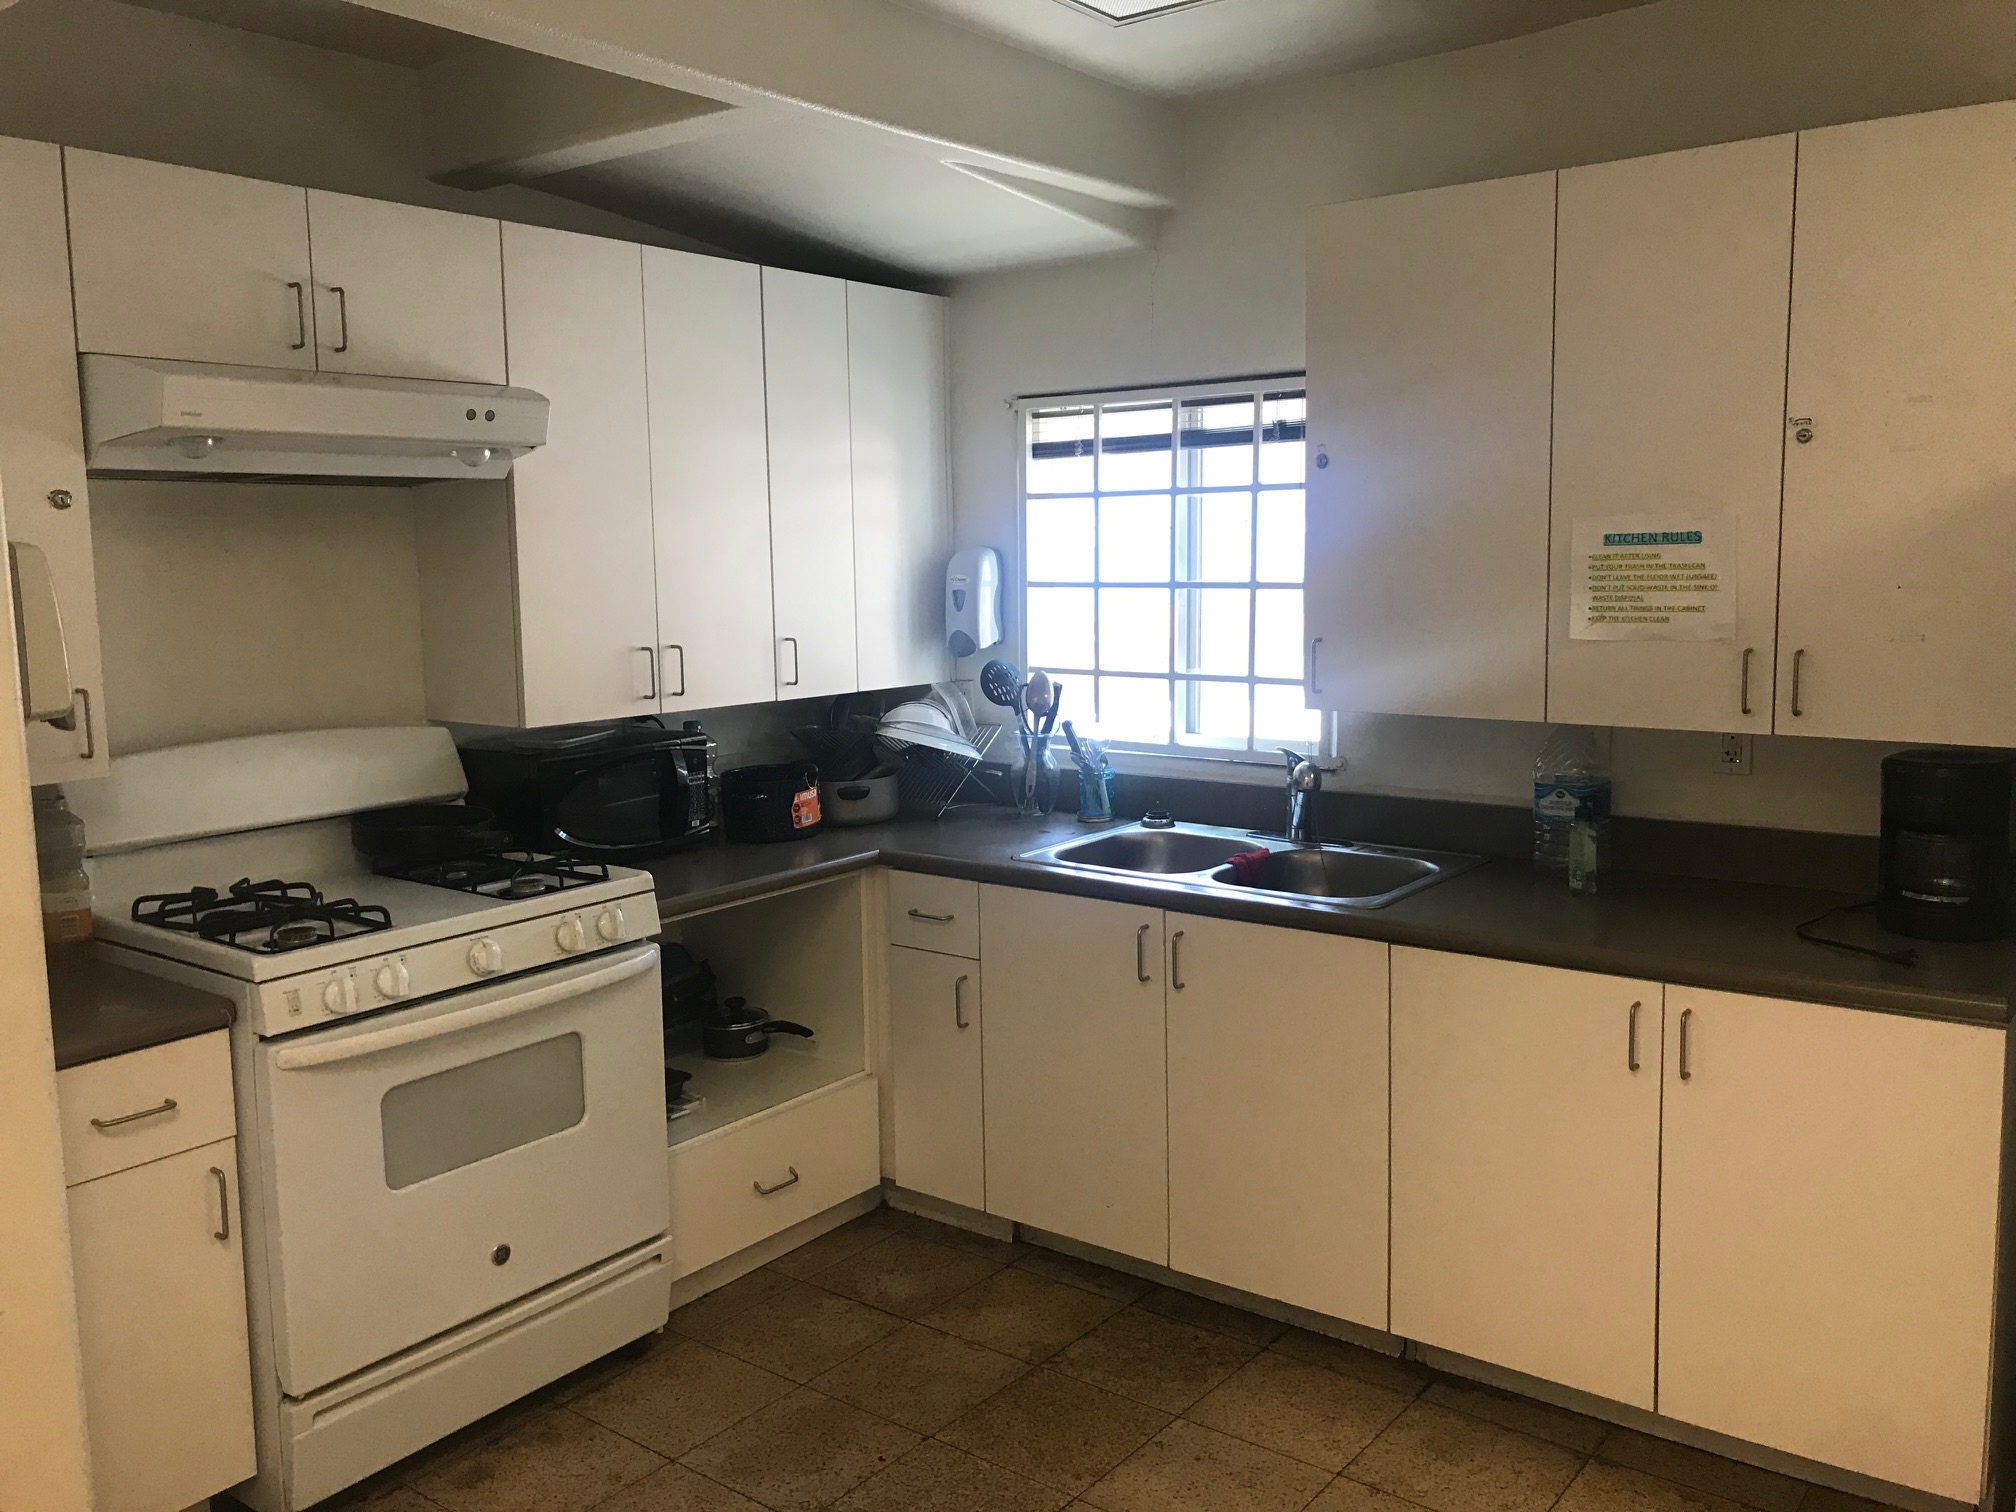 Left side view of a kitchen, white pantry, white stove with oven and under cabinet range hood, black microwave, pots, dishes, gallon of water, cooffe maker, soap dispenser, white window.